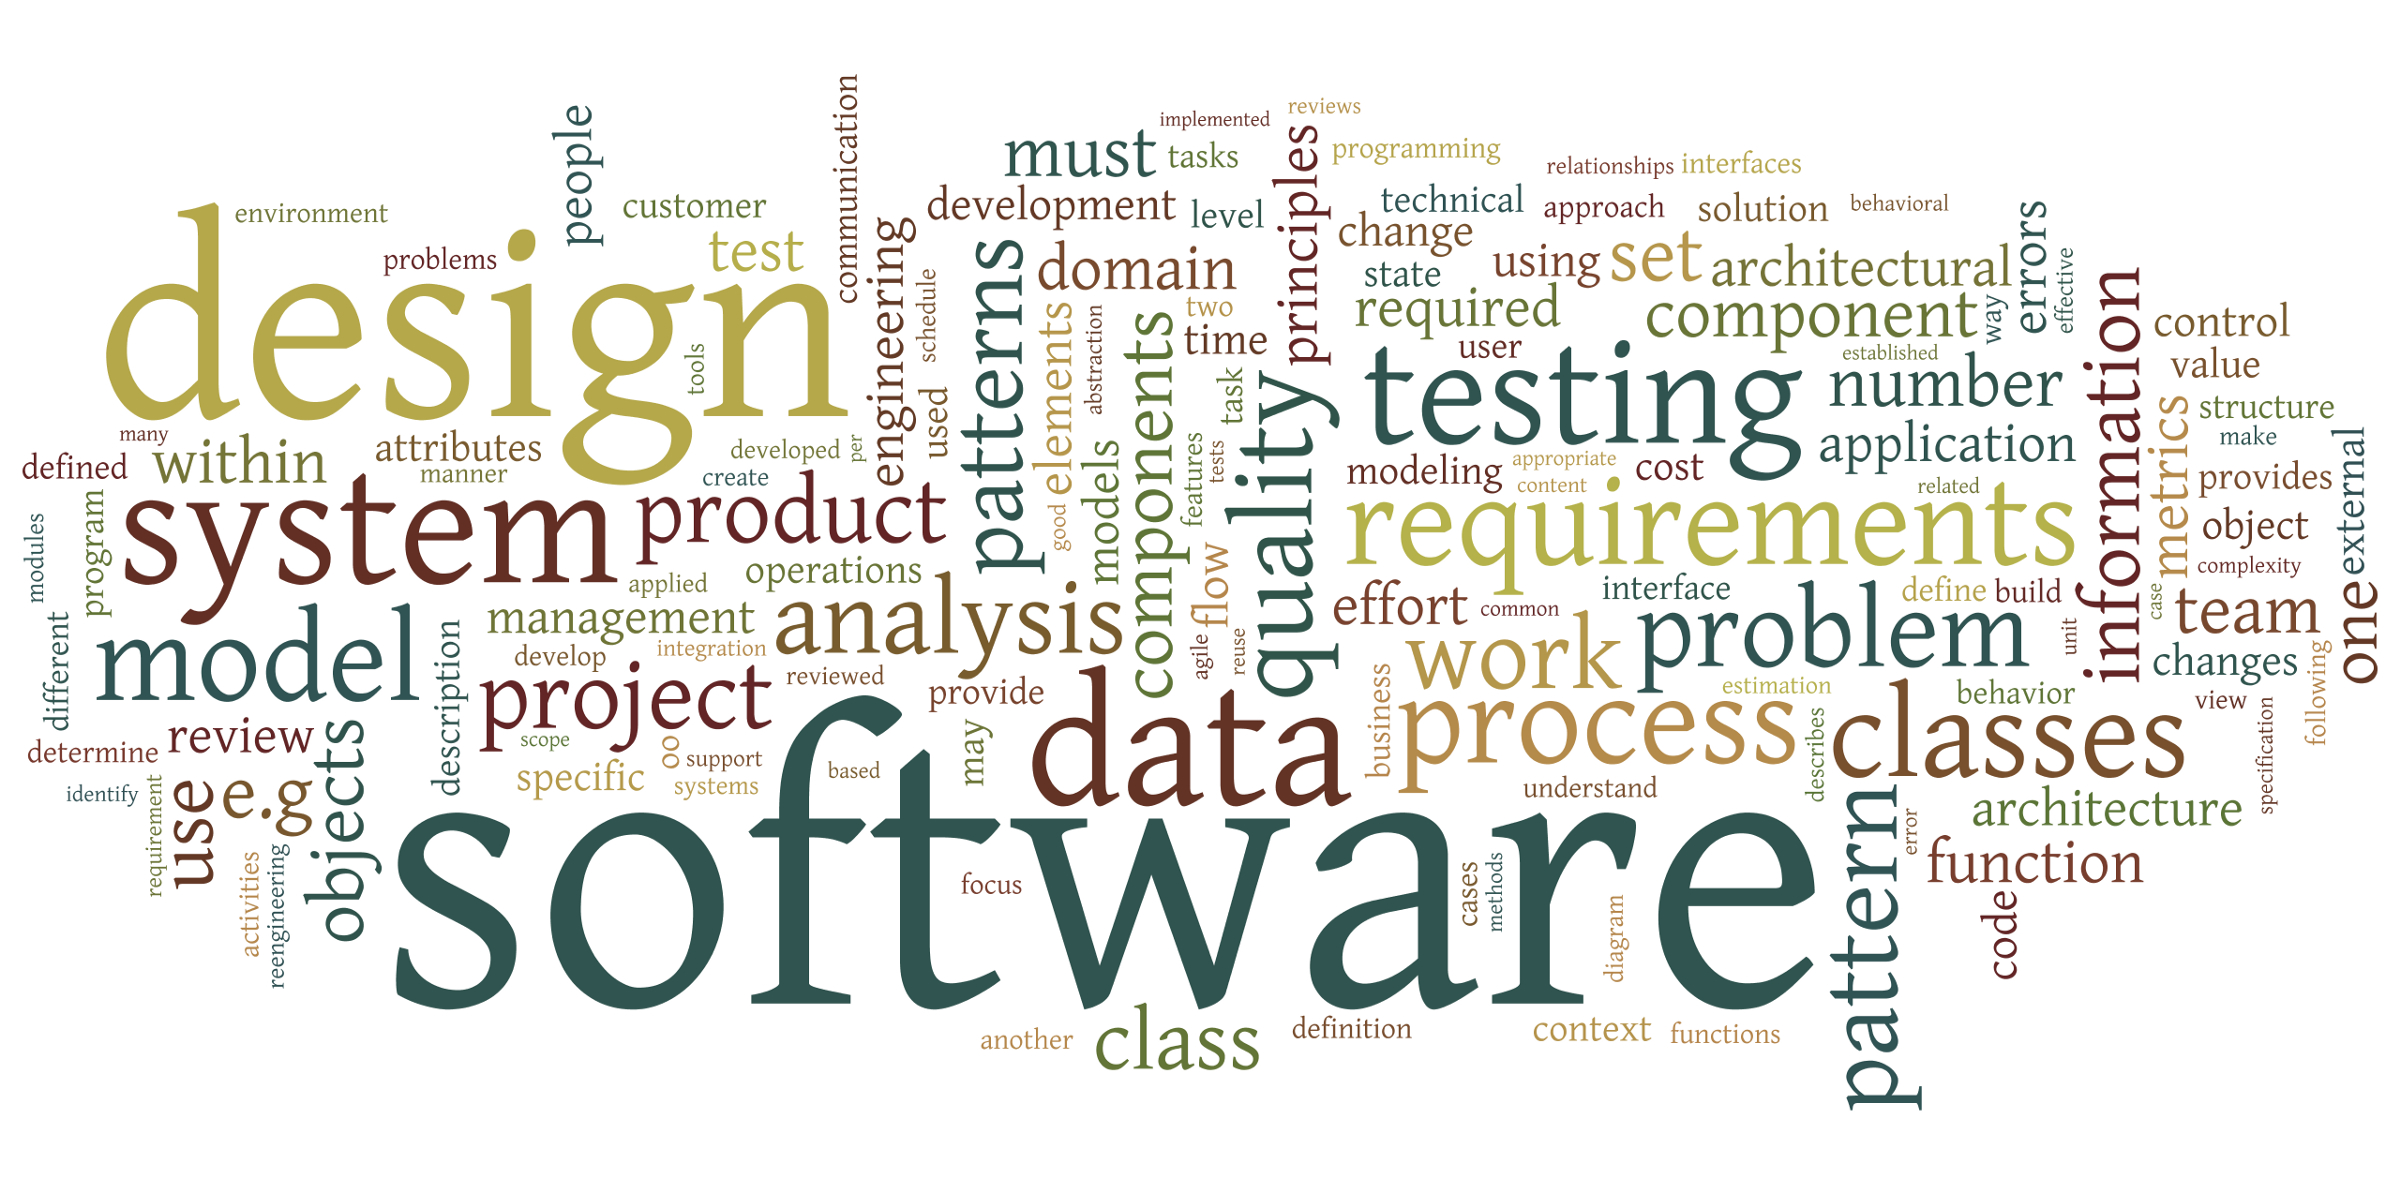 /-software-rules-of-thumb-there-are-quite-a-few-rulesprinciples-that-get-thrown-around-in-the-q9u367n feature image